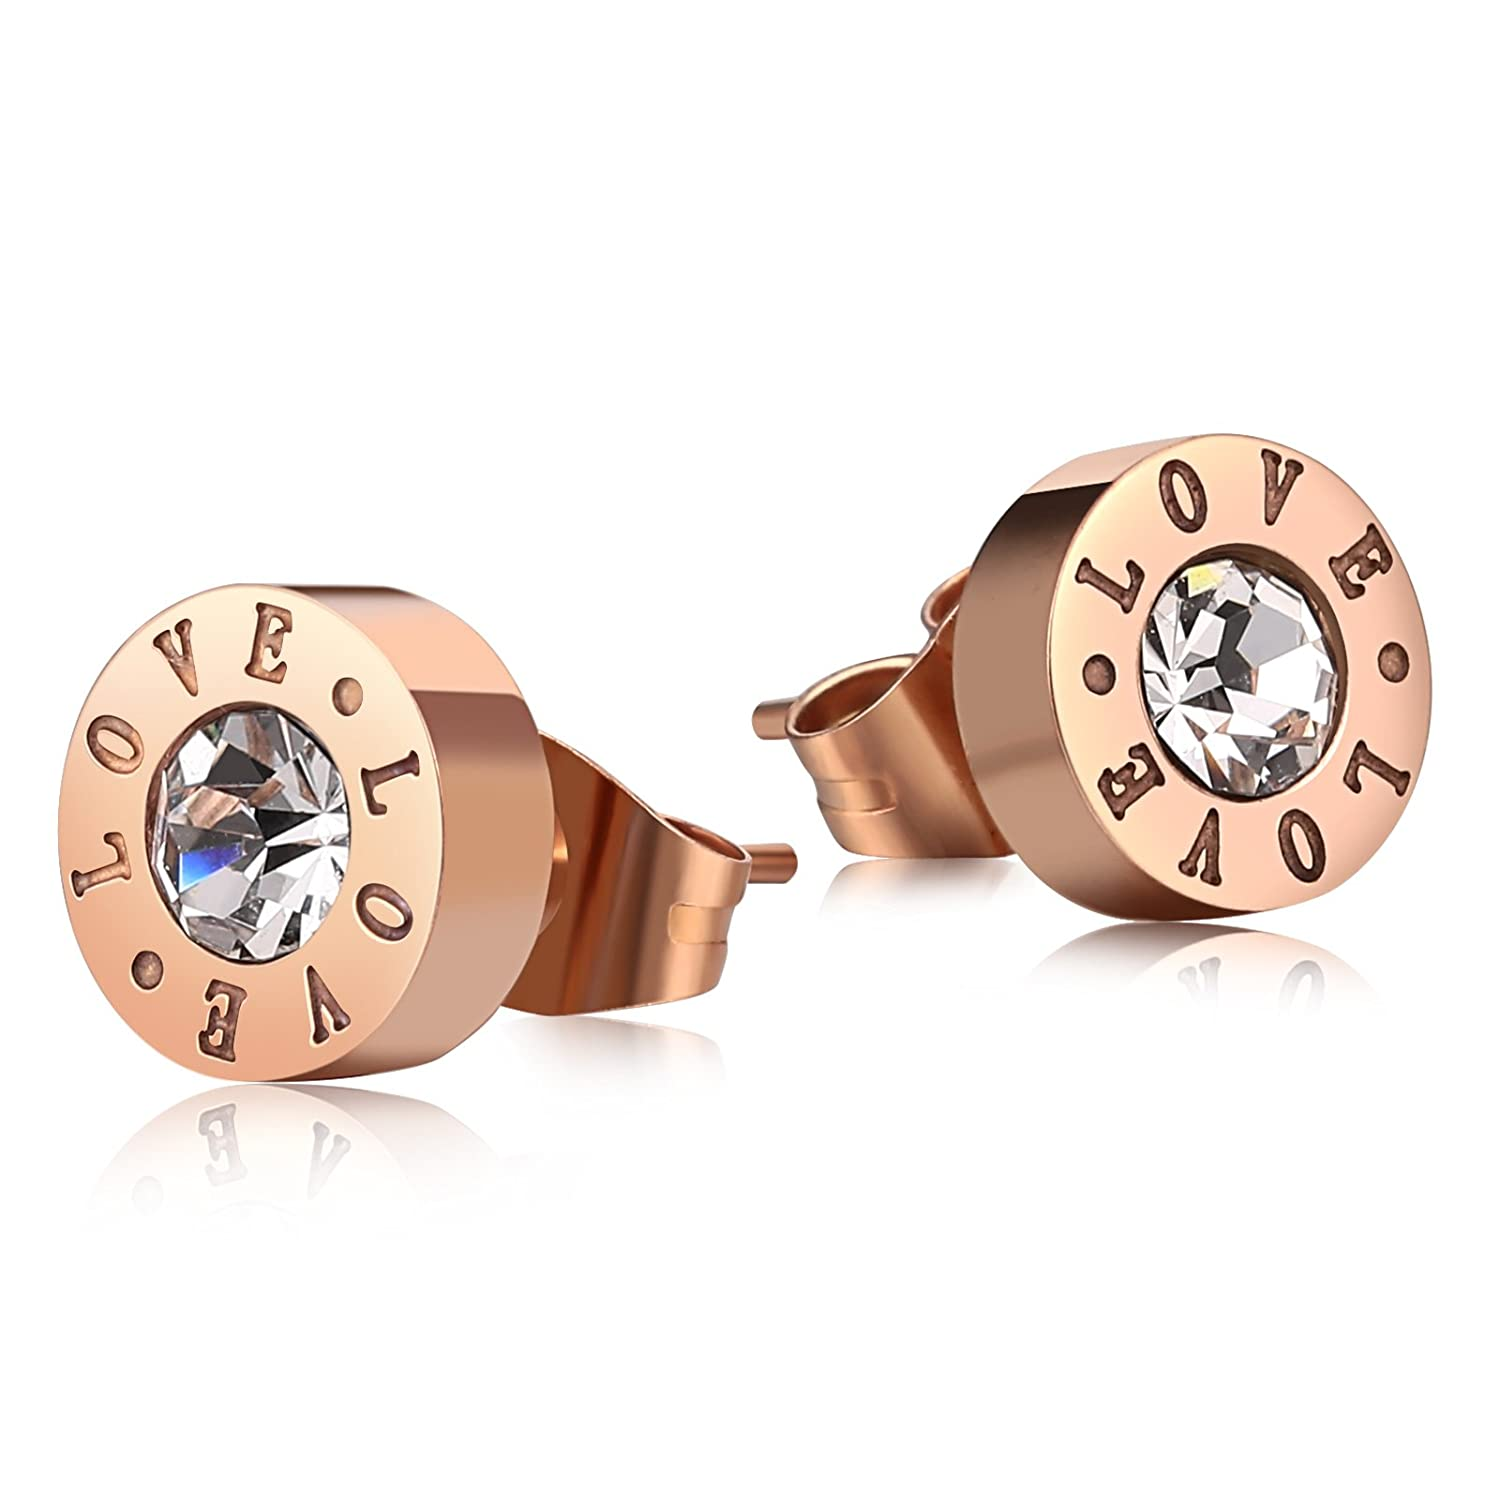 MoAndy CZ Stud Earrings for Women Stainless Steel Engraved LOVE AAA Zircon Round Earrings Rose Gold JW1748